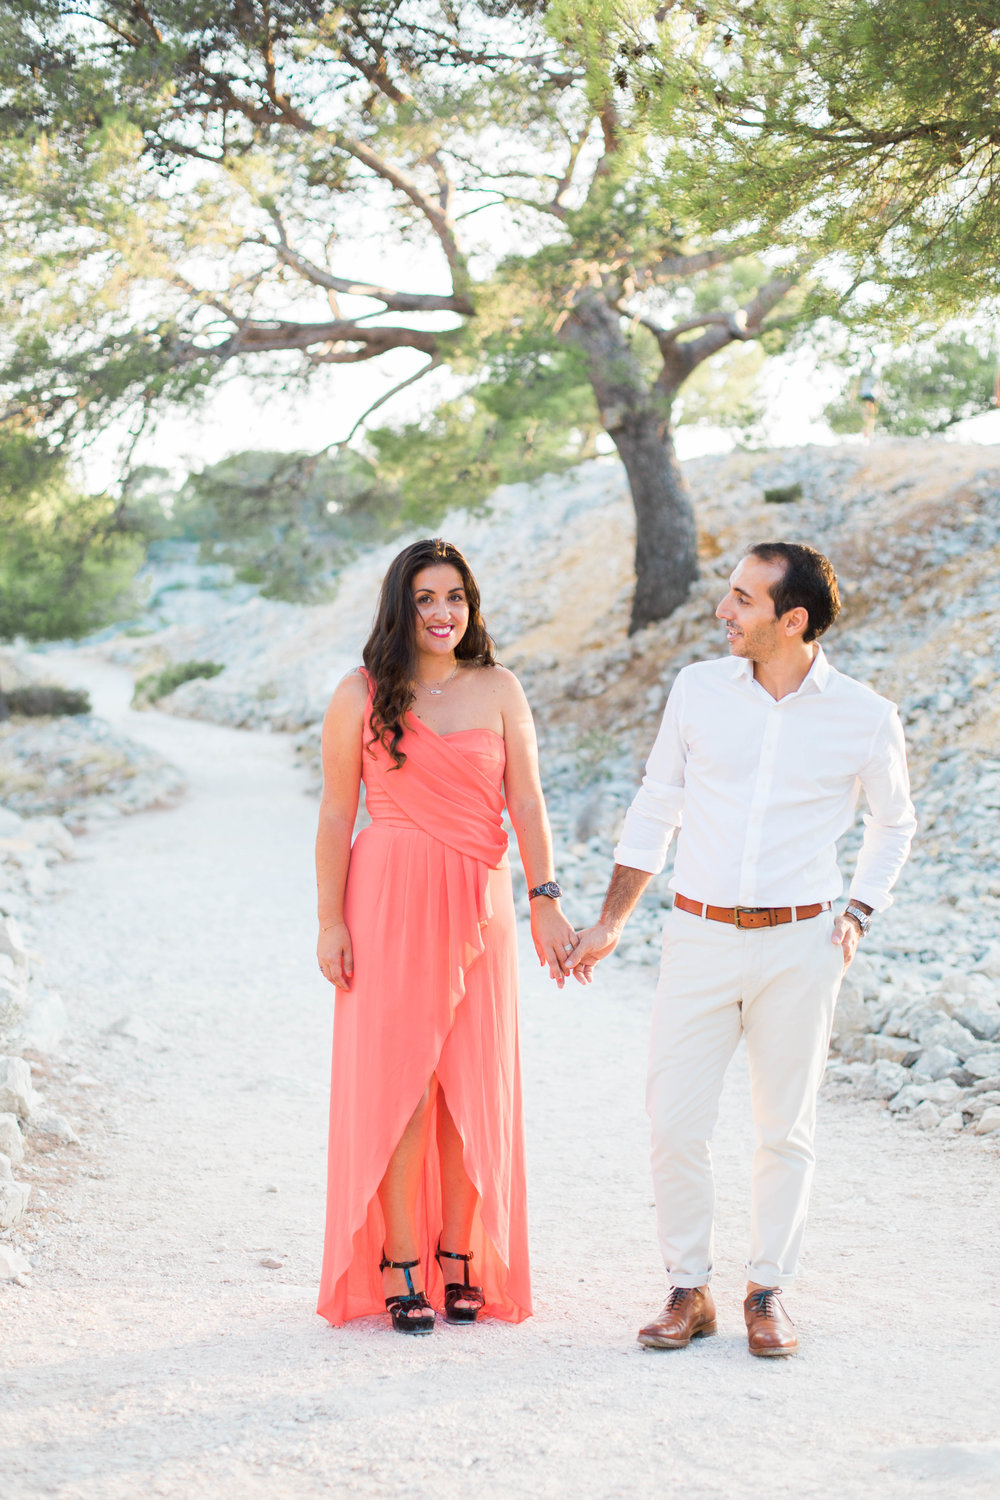 engagement photographer cote d'azur provence